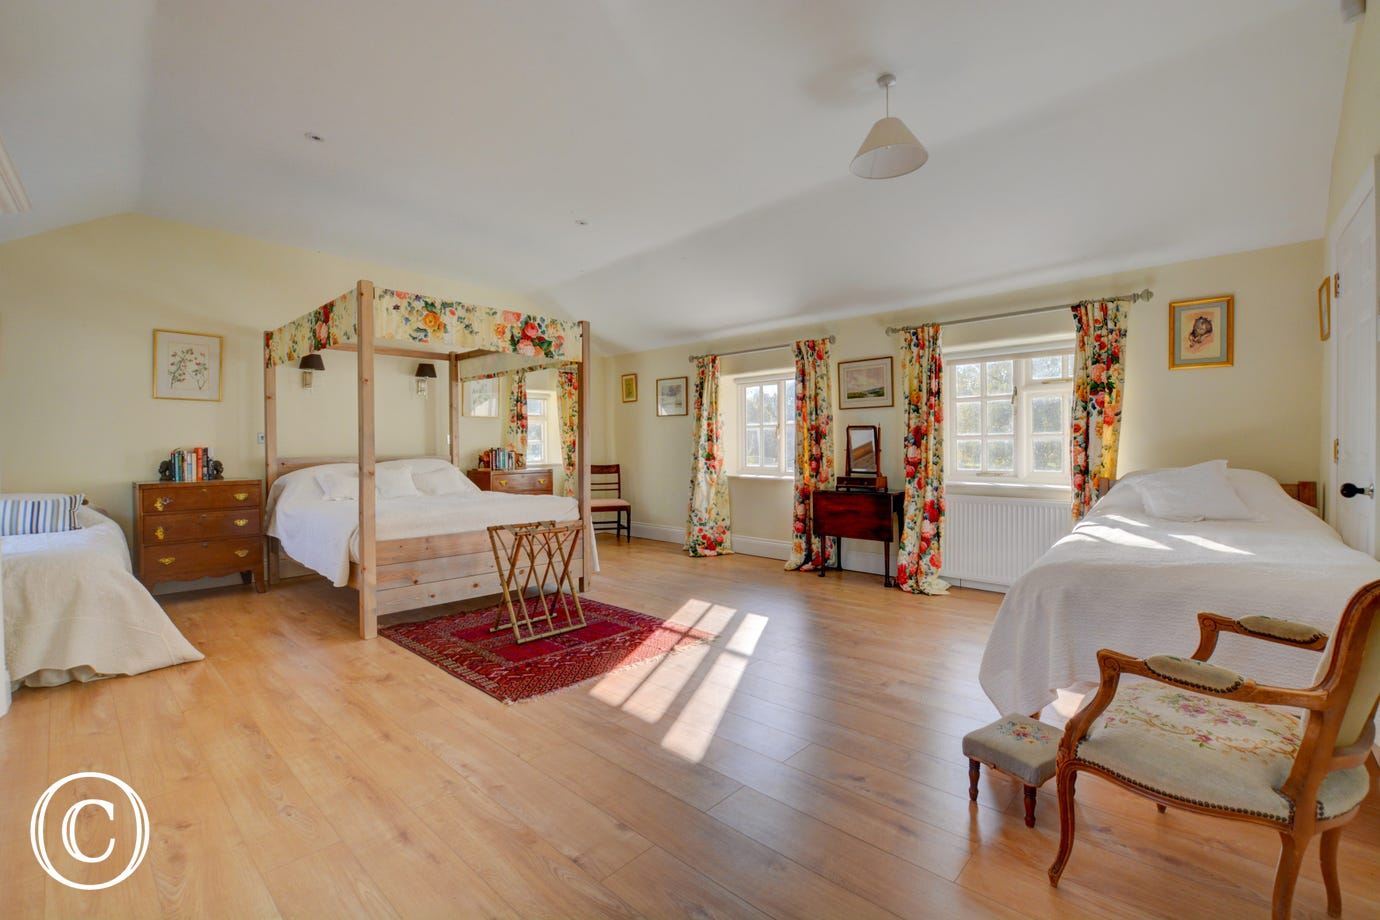 Luxury master suite with king size four poster bed and single bed